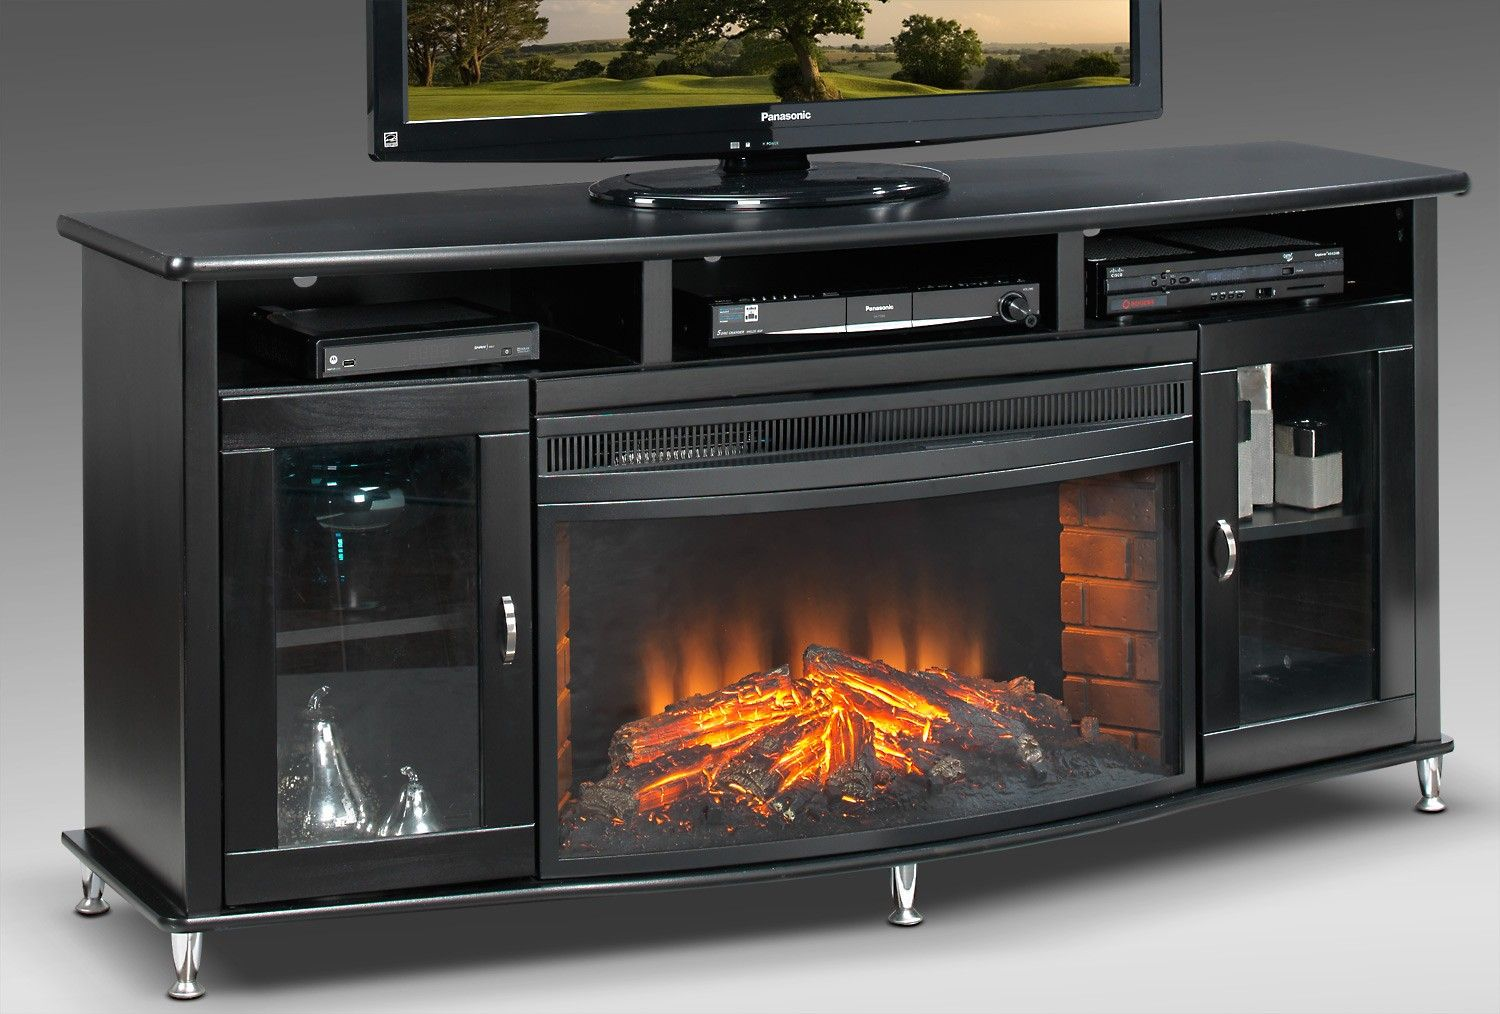 hillmount entertainment wall units fireplace tv stand  leon's  - hillmount entertainment wall units fireplace tv stand  leon's  indoors pinterest  fireplace tv stand entertainment wall units and tv stands